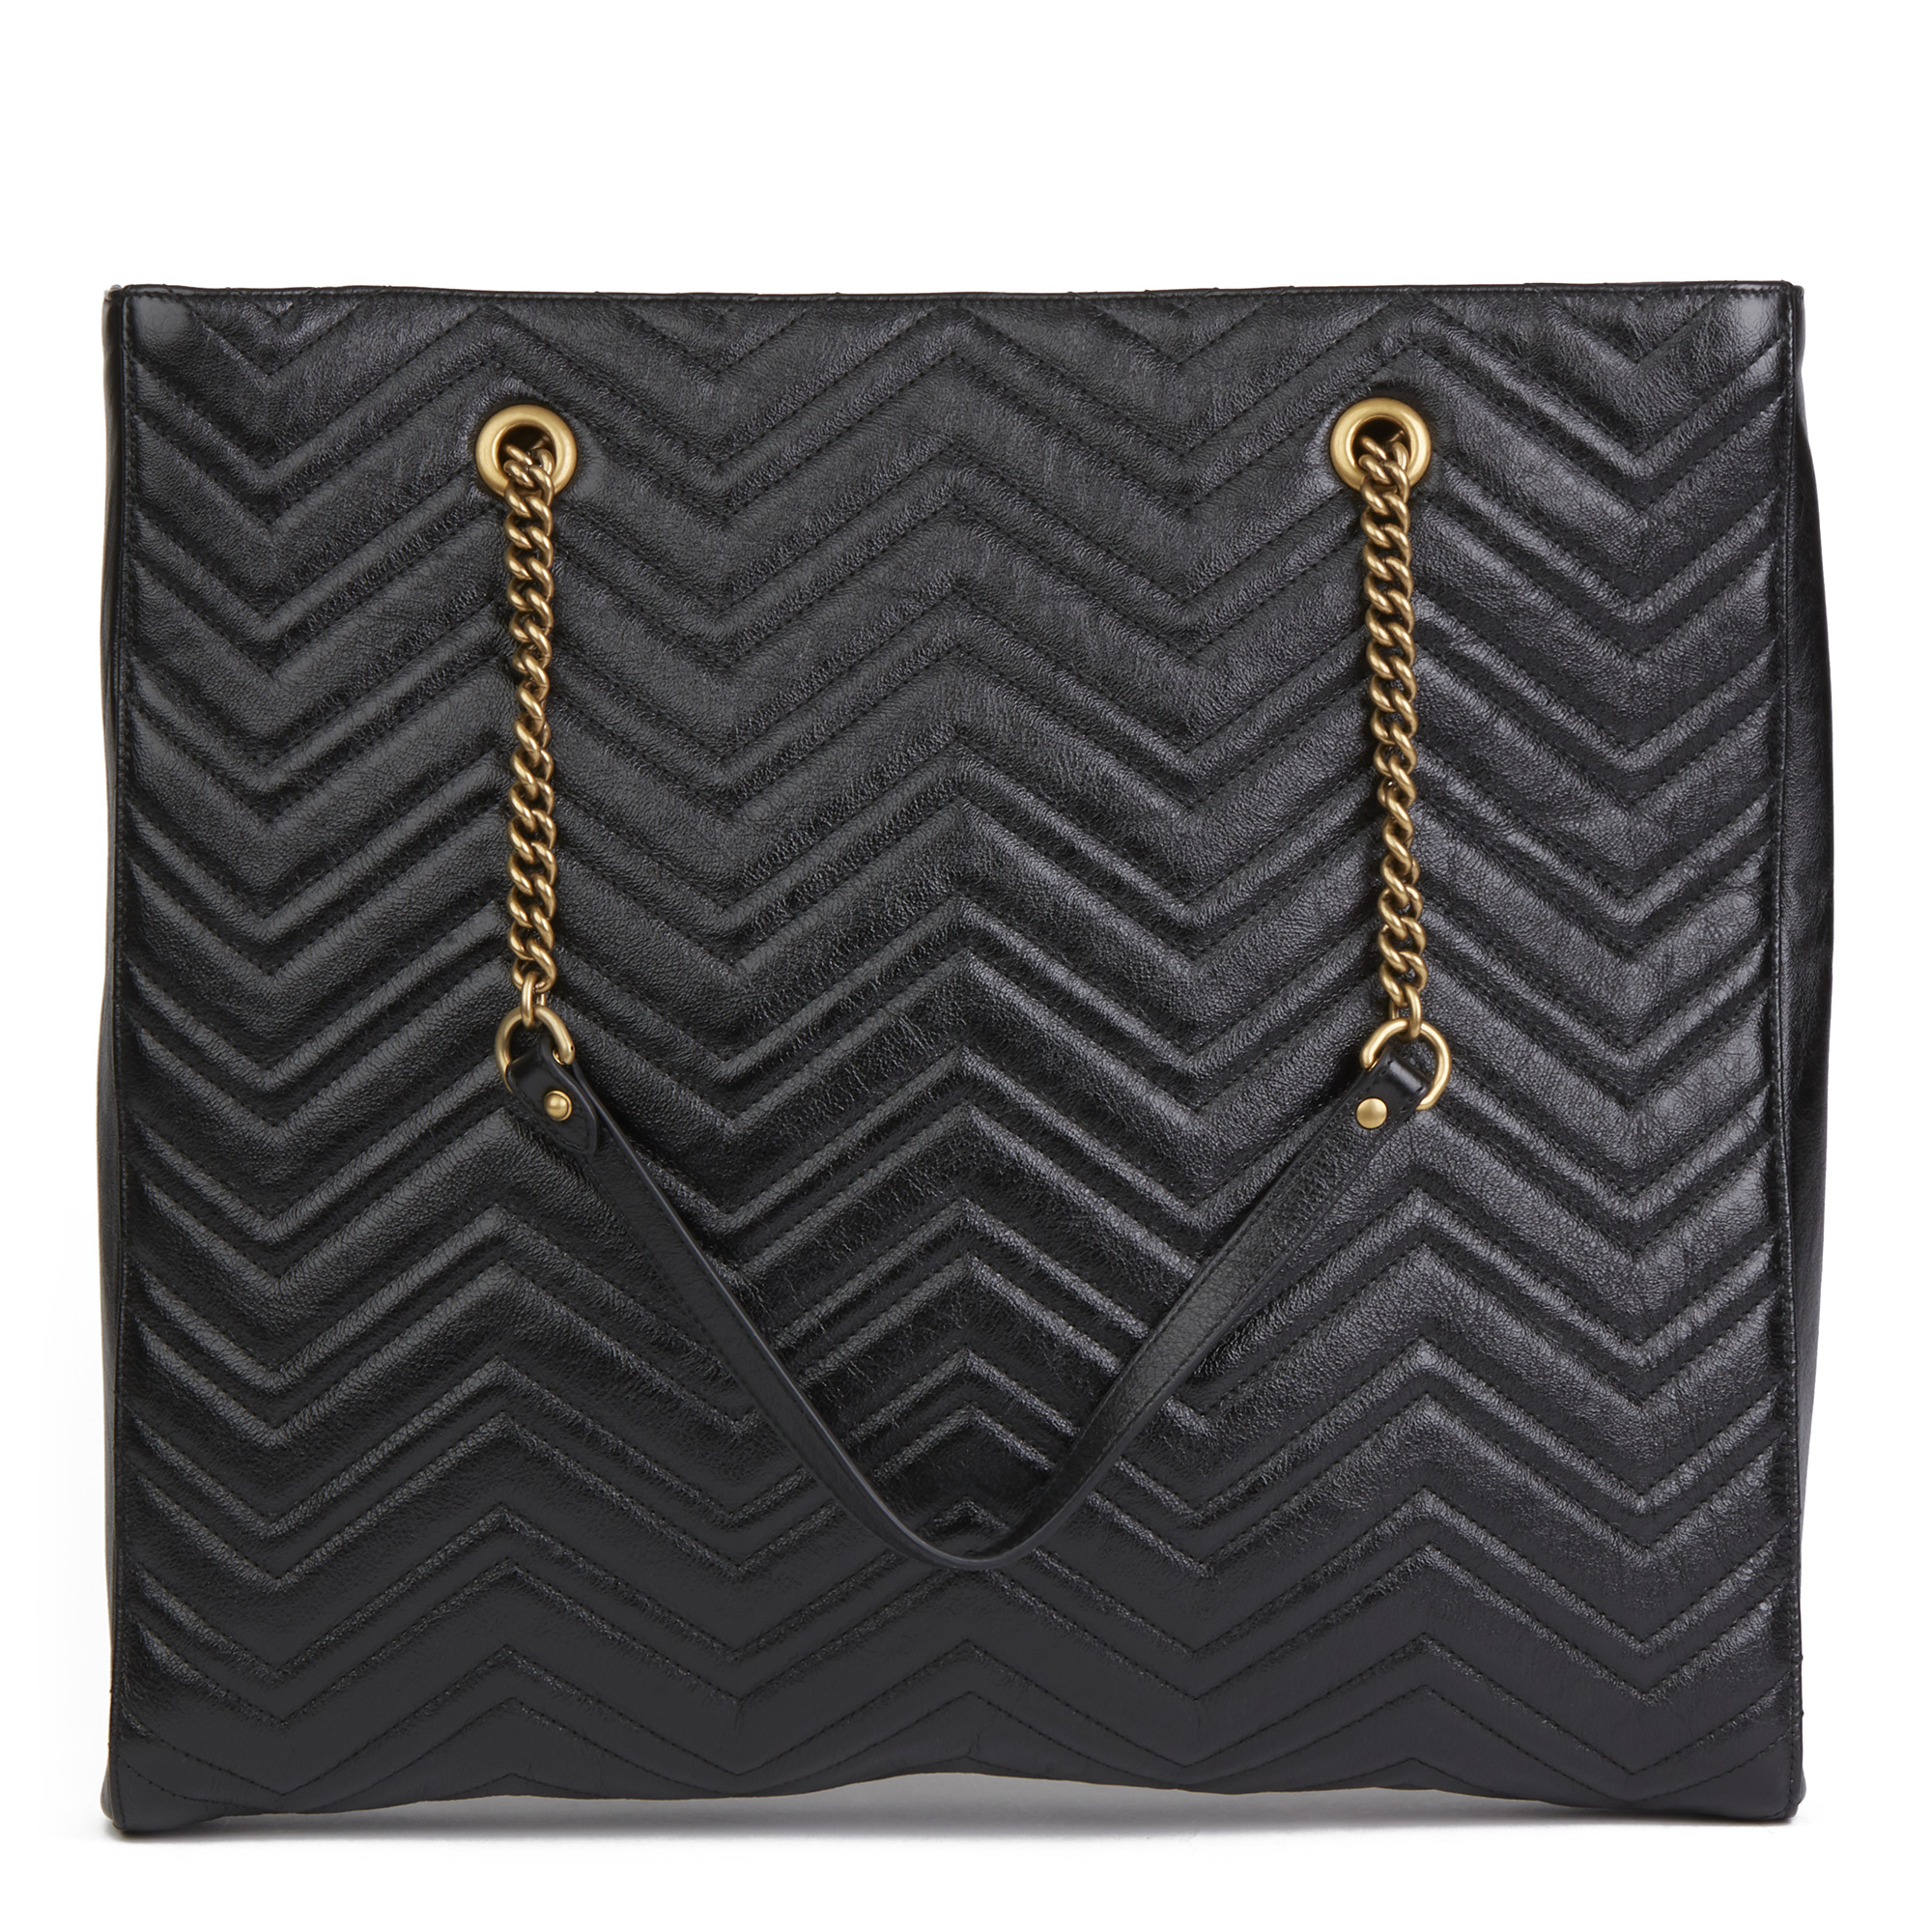 Gucci Black Quilted Shiny Calfskin Leather Marmont Shoulder Tote - Image 10 of 12